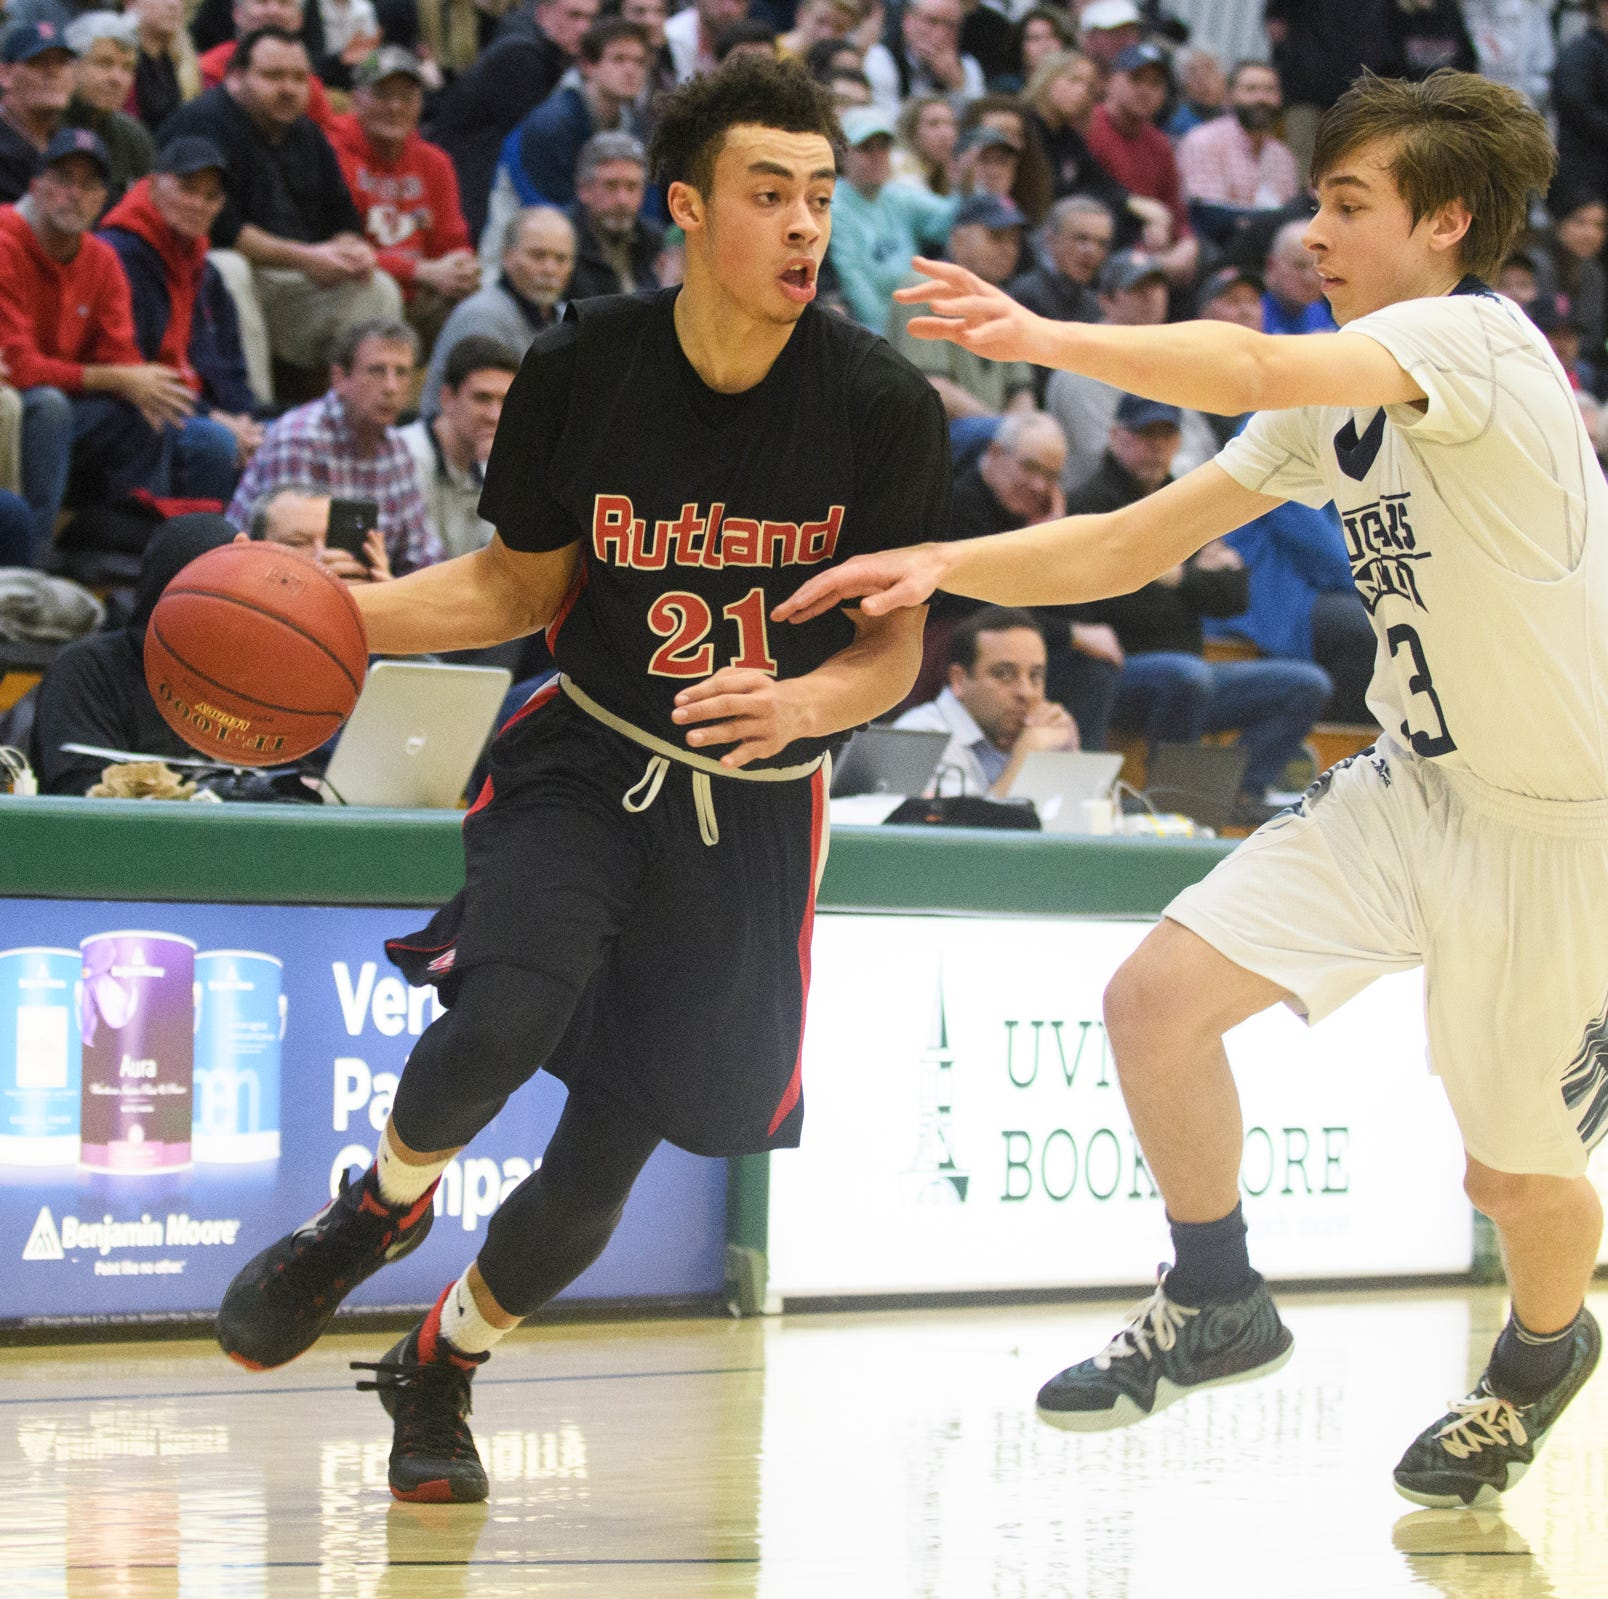 Vermont H.S. boys basketball: Rutland's Jamison Evans named Gatorade player of the year